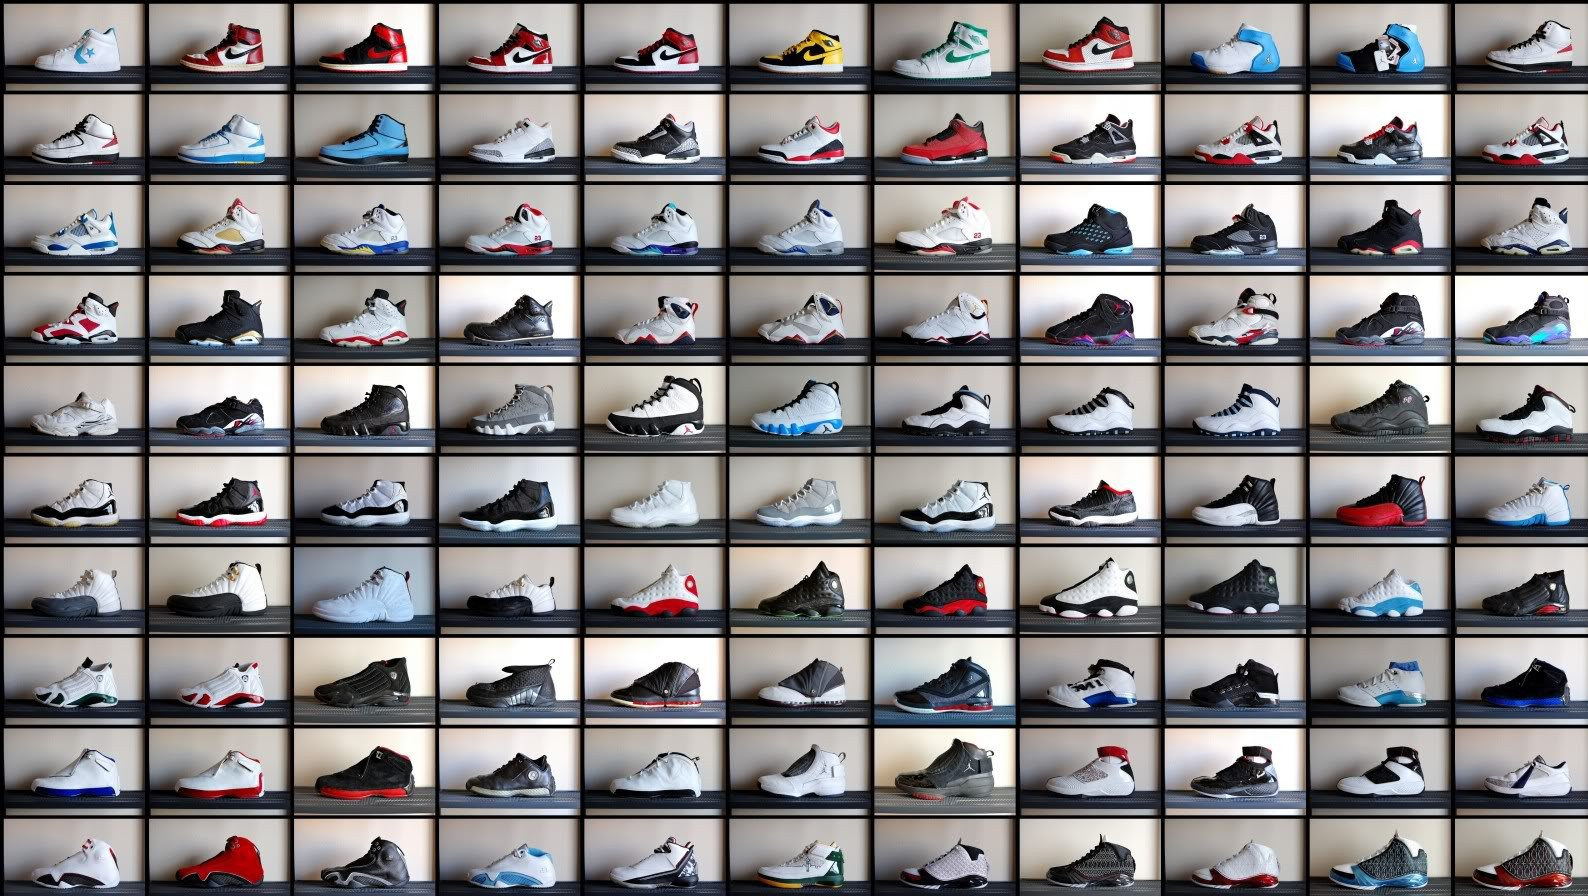 How much do the most expensive basketball shoes in the world cost?